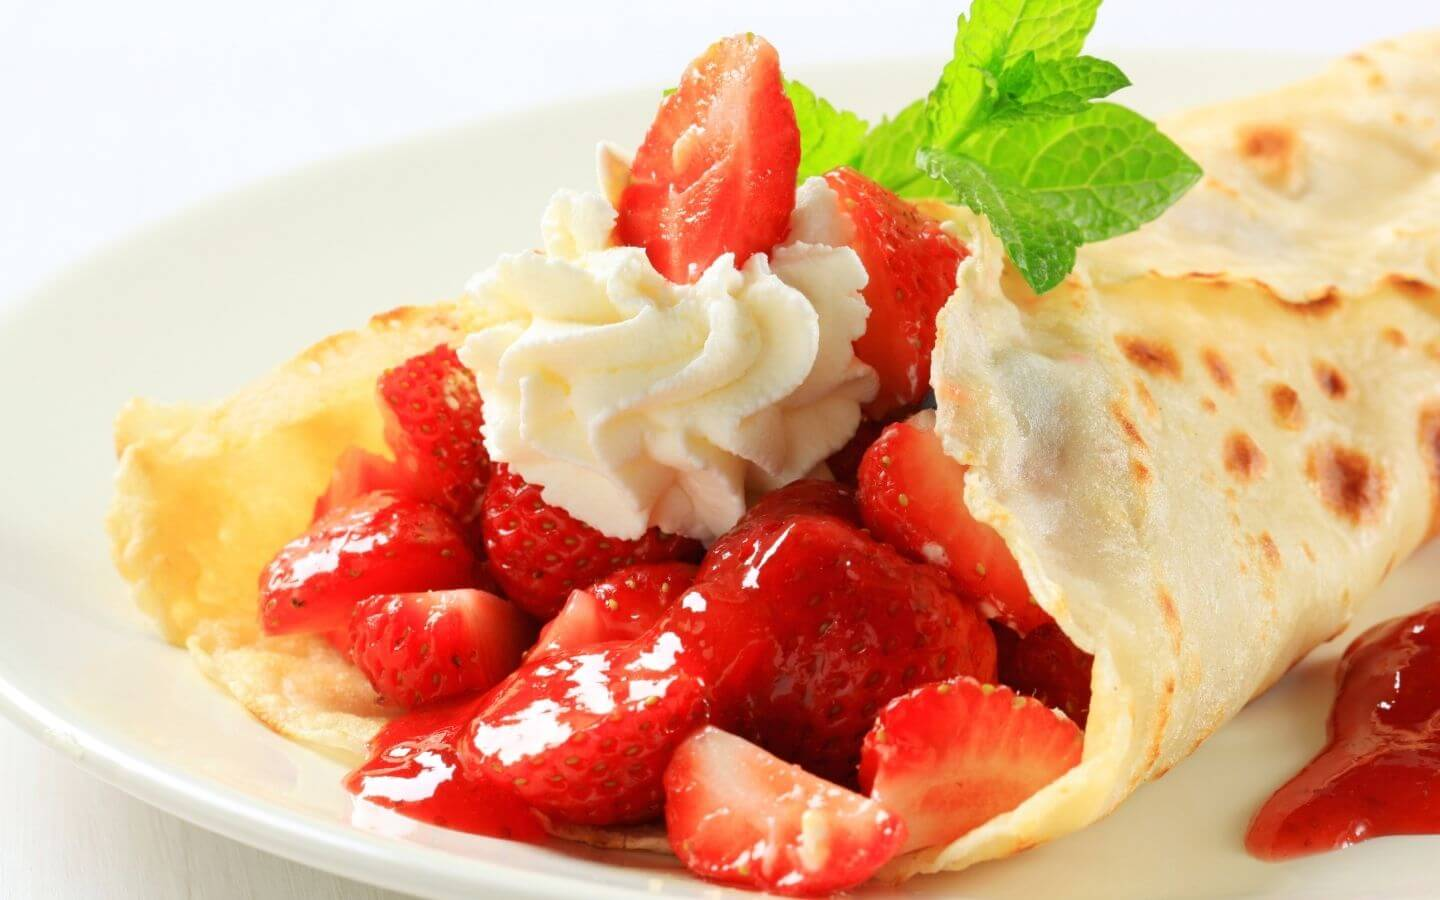 Strawberry and rhubarb filled crepes